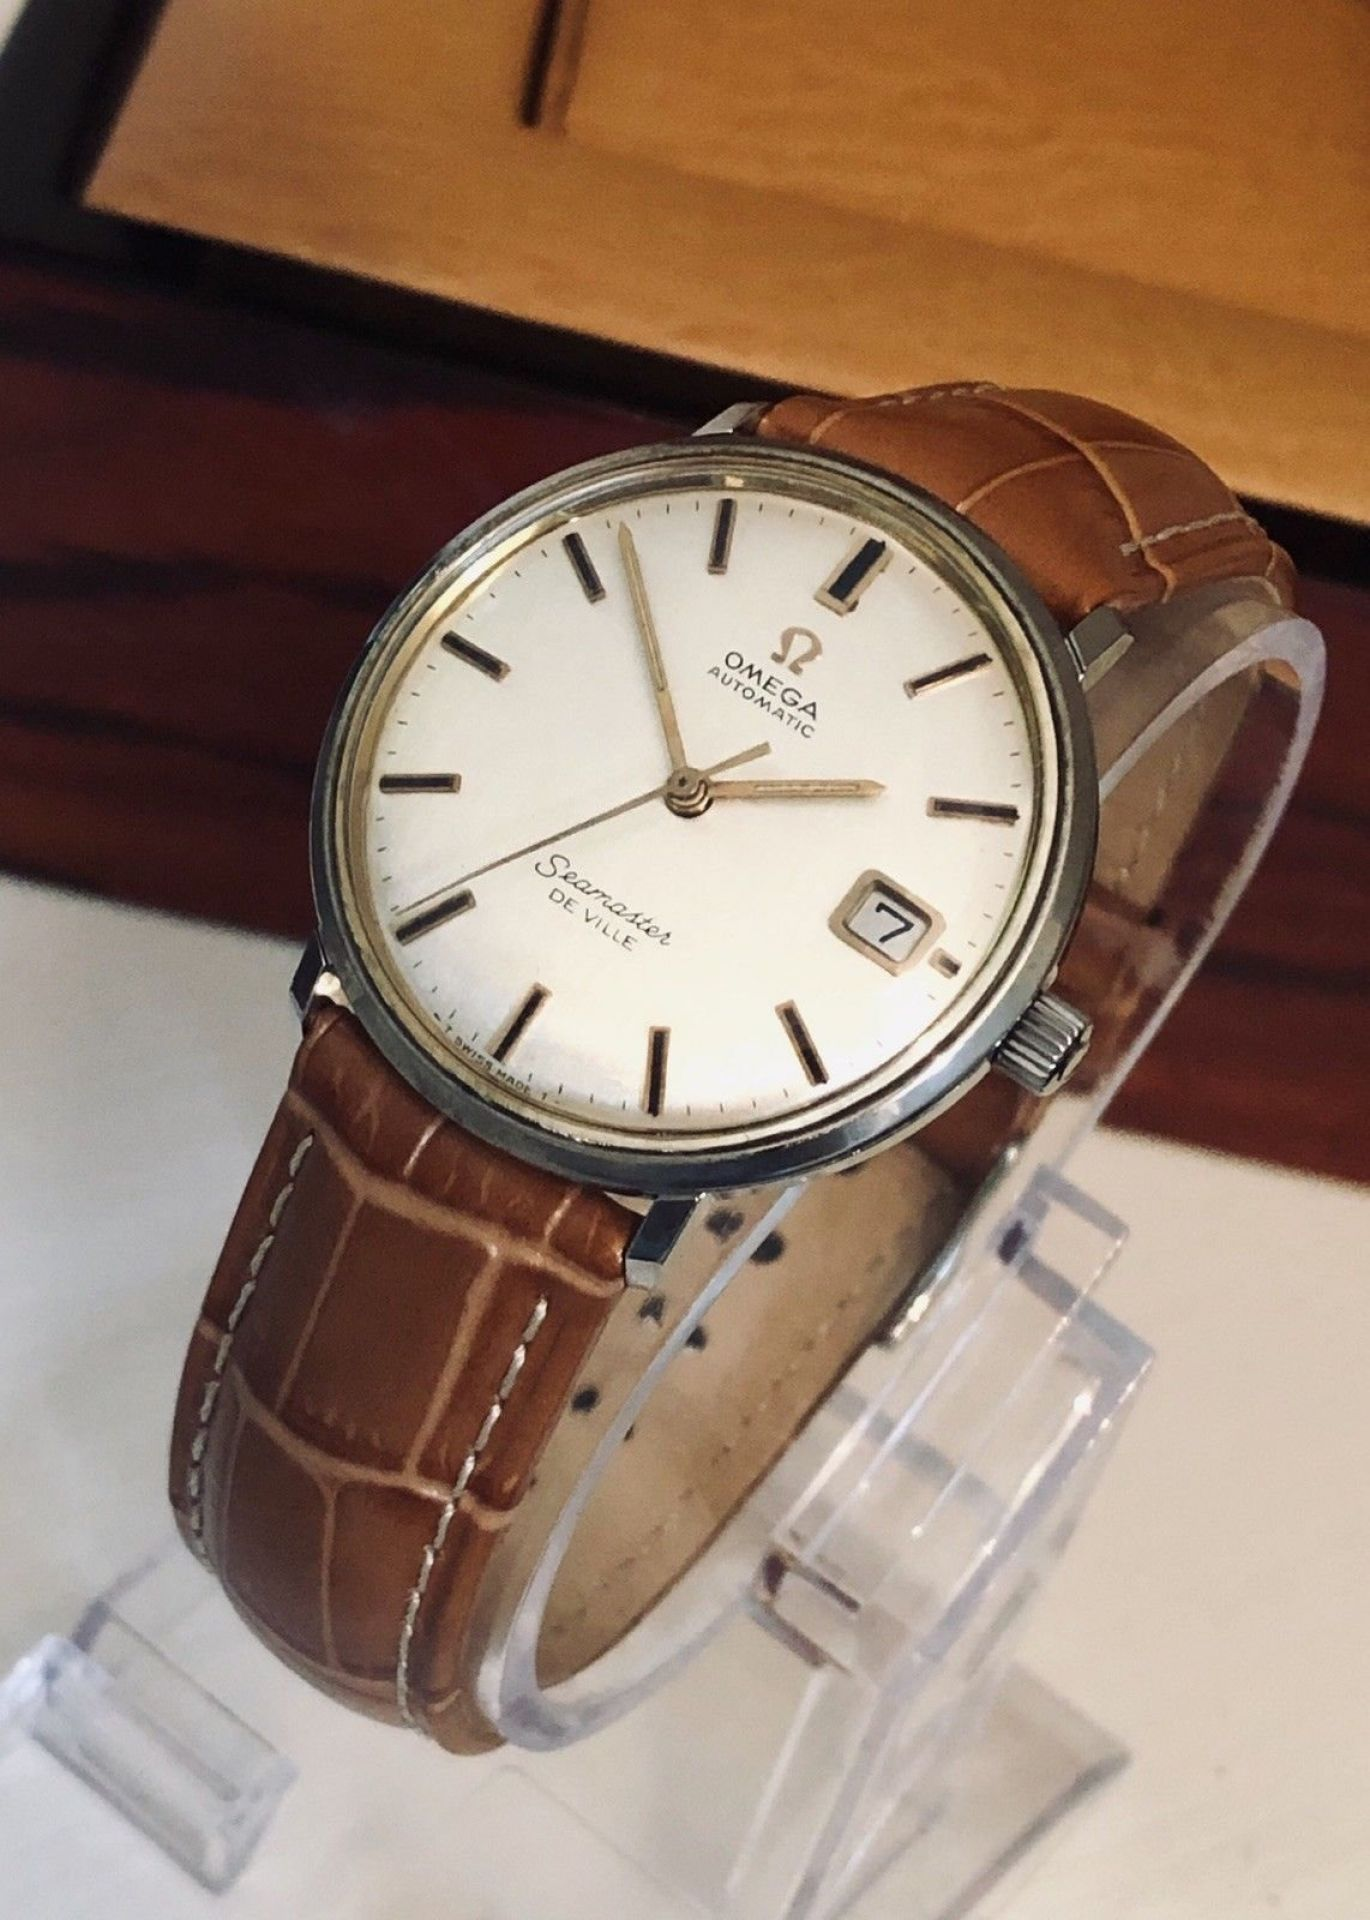 OMEGA SEAMASTER DE VILLE VINTAGE WATCH CAL 563 MECHANICAL AUTOMATIC